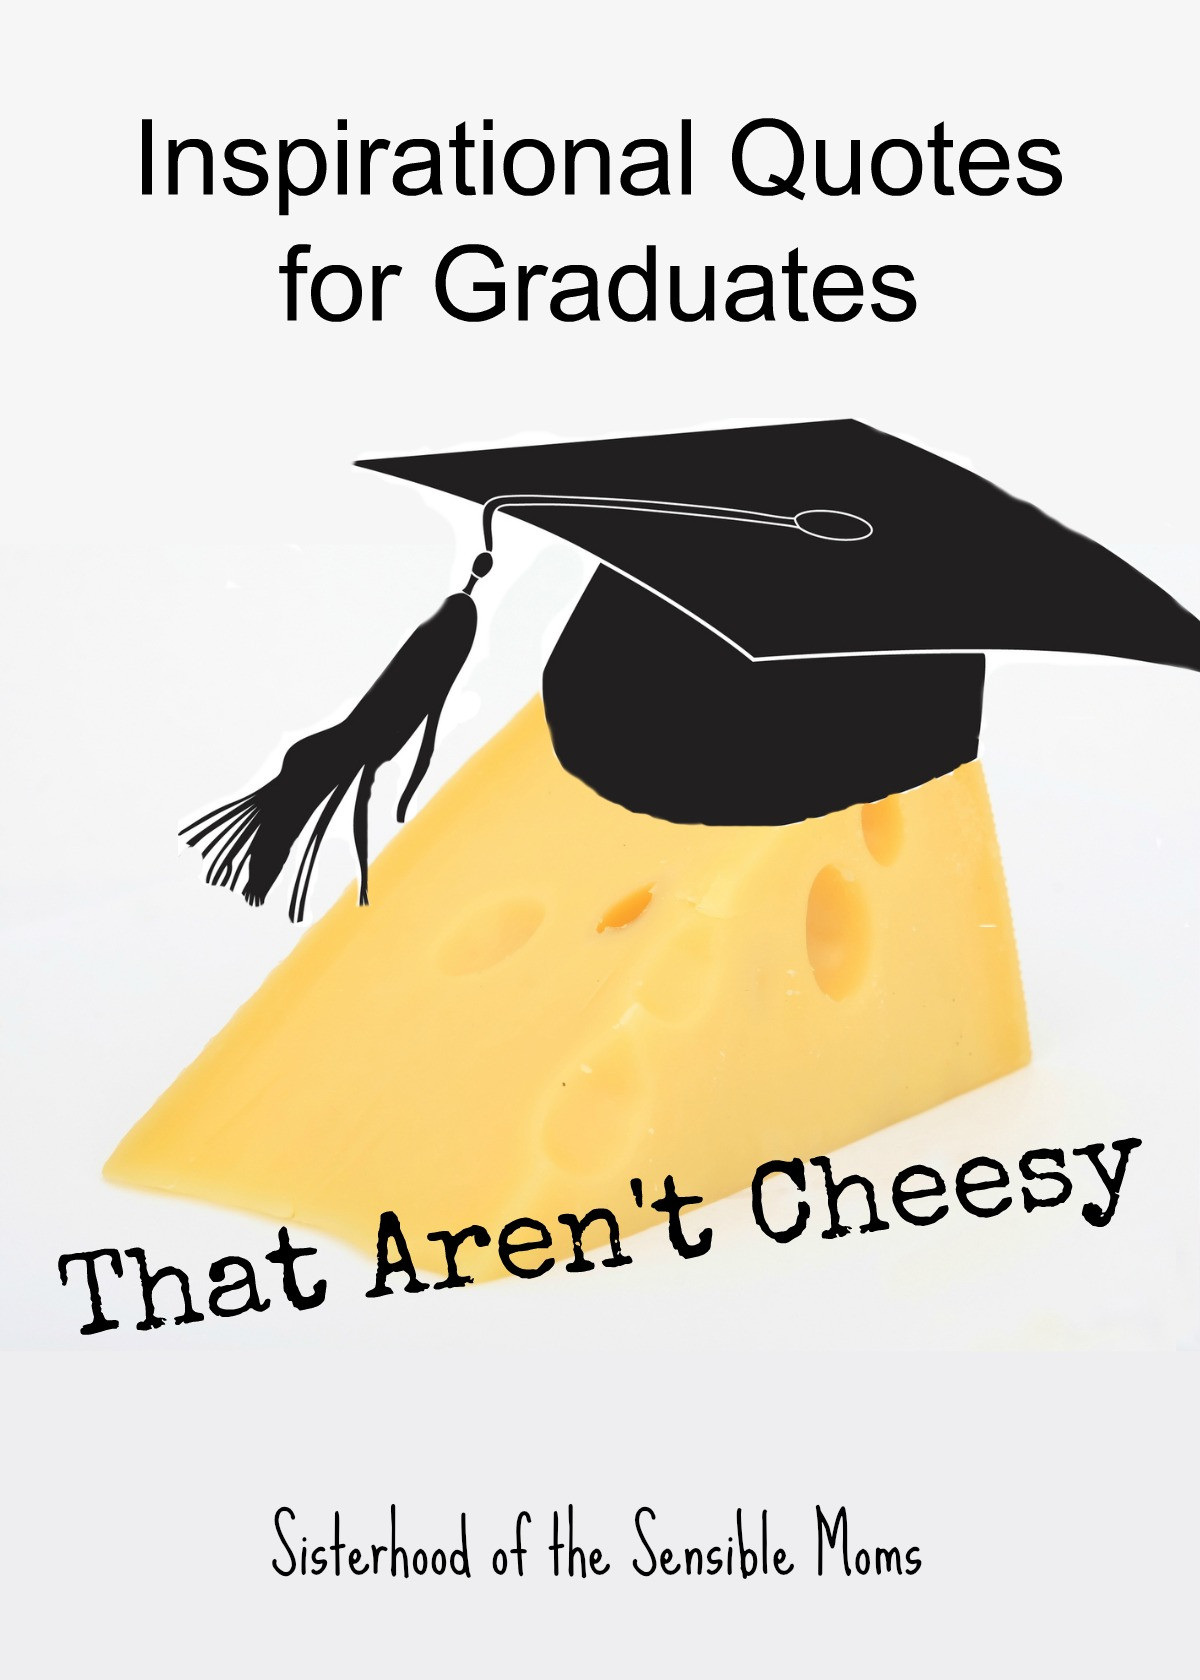 Graduation Motivational Quotes  Inspirational Quotes for Graduates That Aren t Cheesy